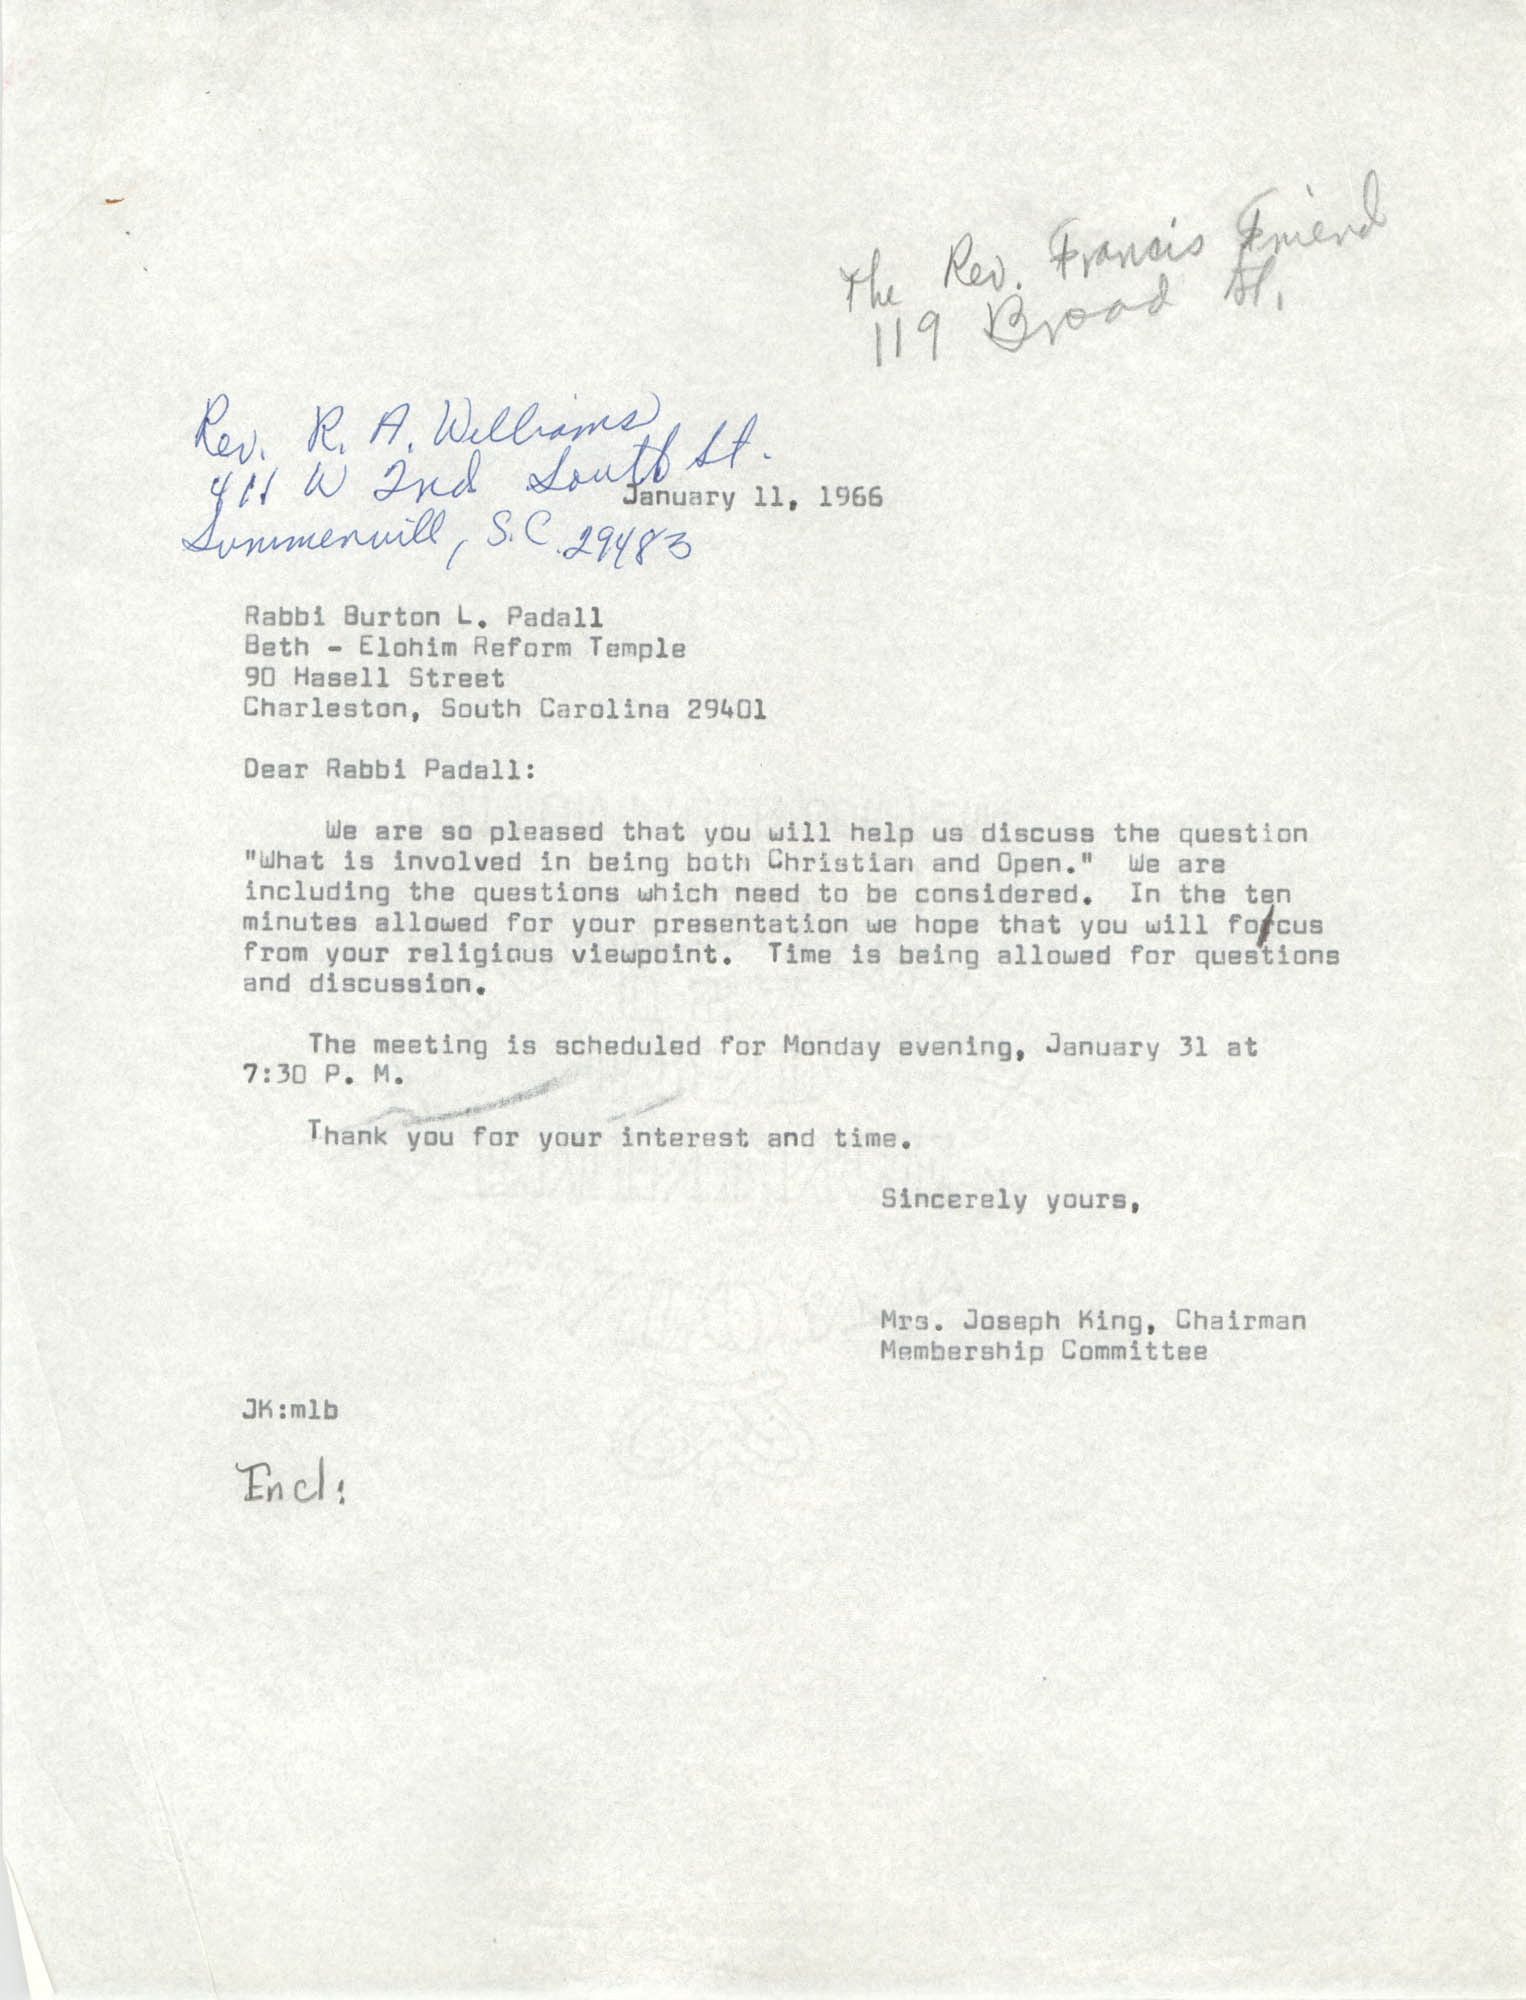 Letter from Mrs. Joseph King to Burton L. Padall, January 11, 1966